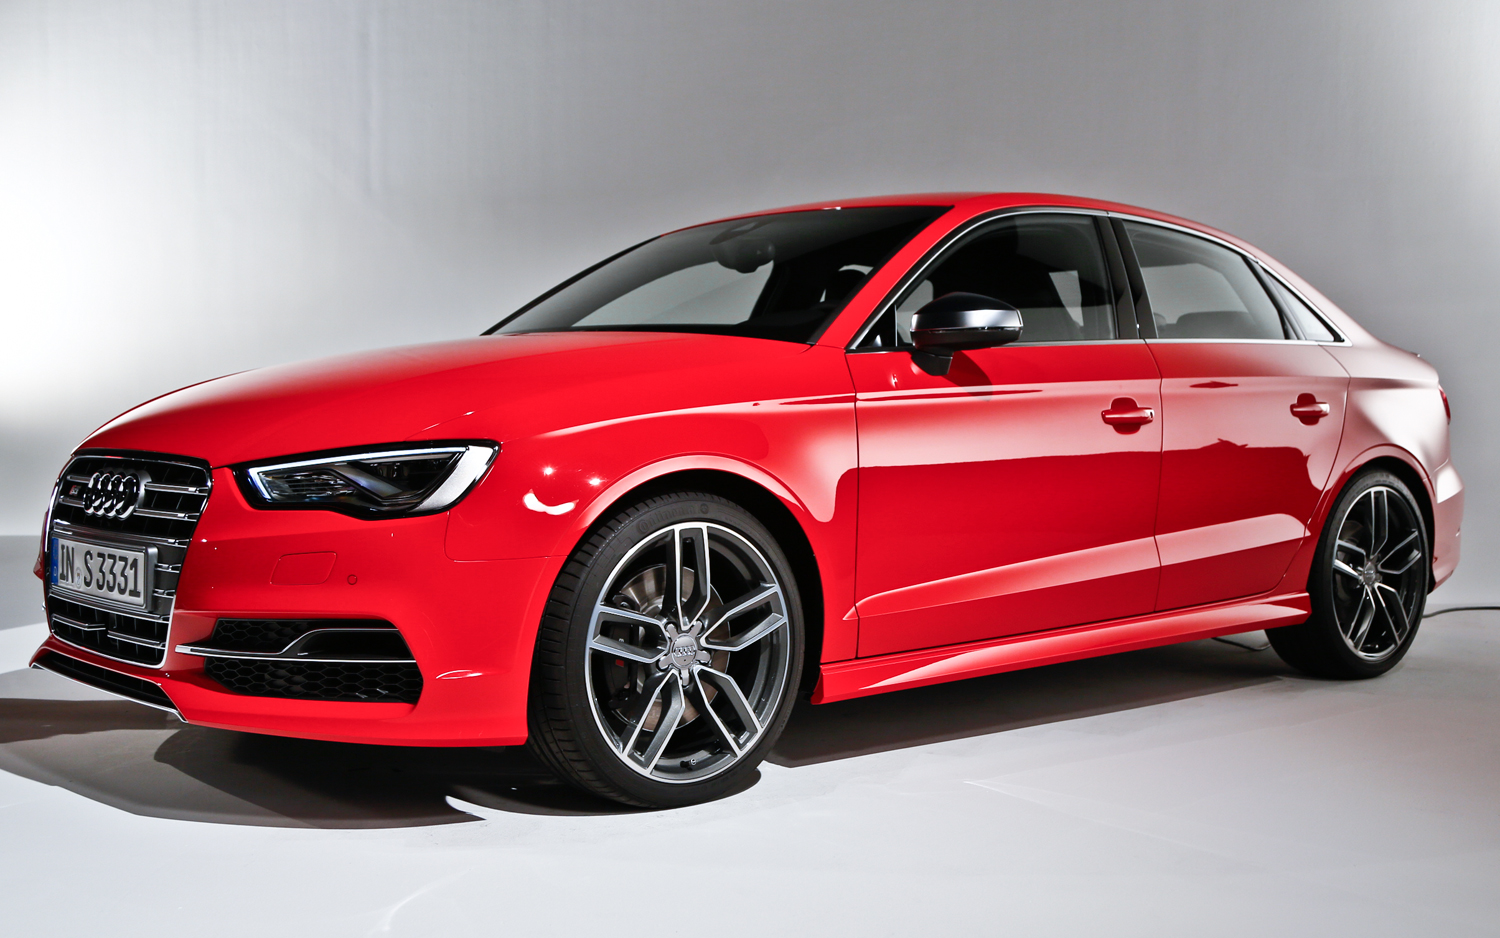 2015 Audi S3 Sedan Red (Photo 9 of 10)